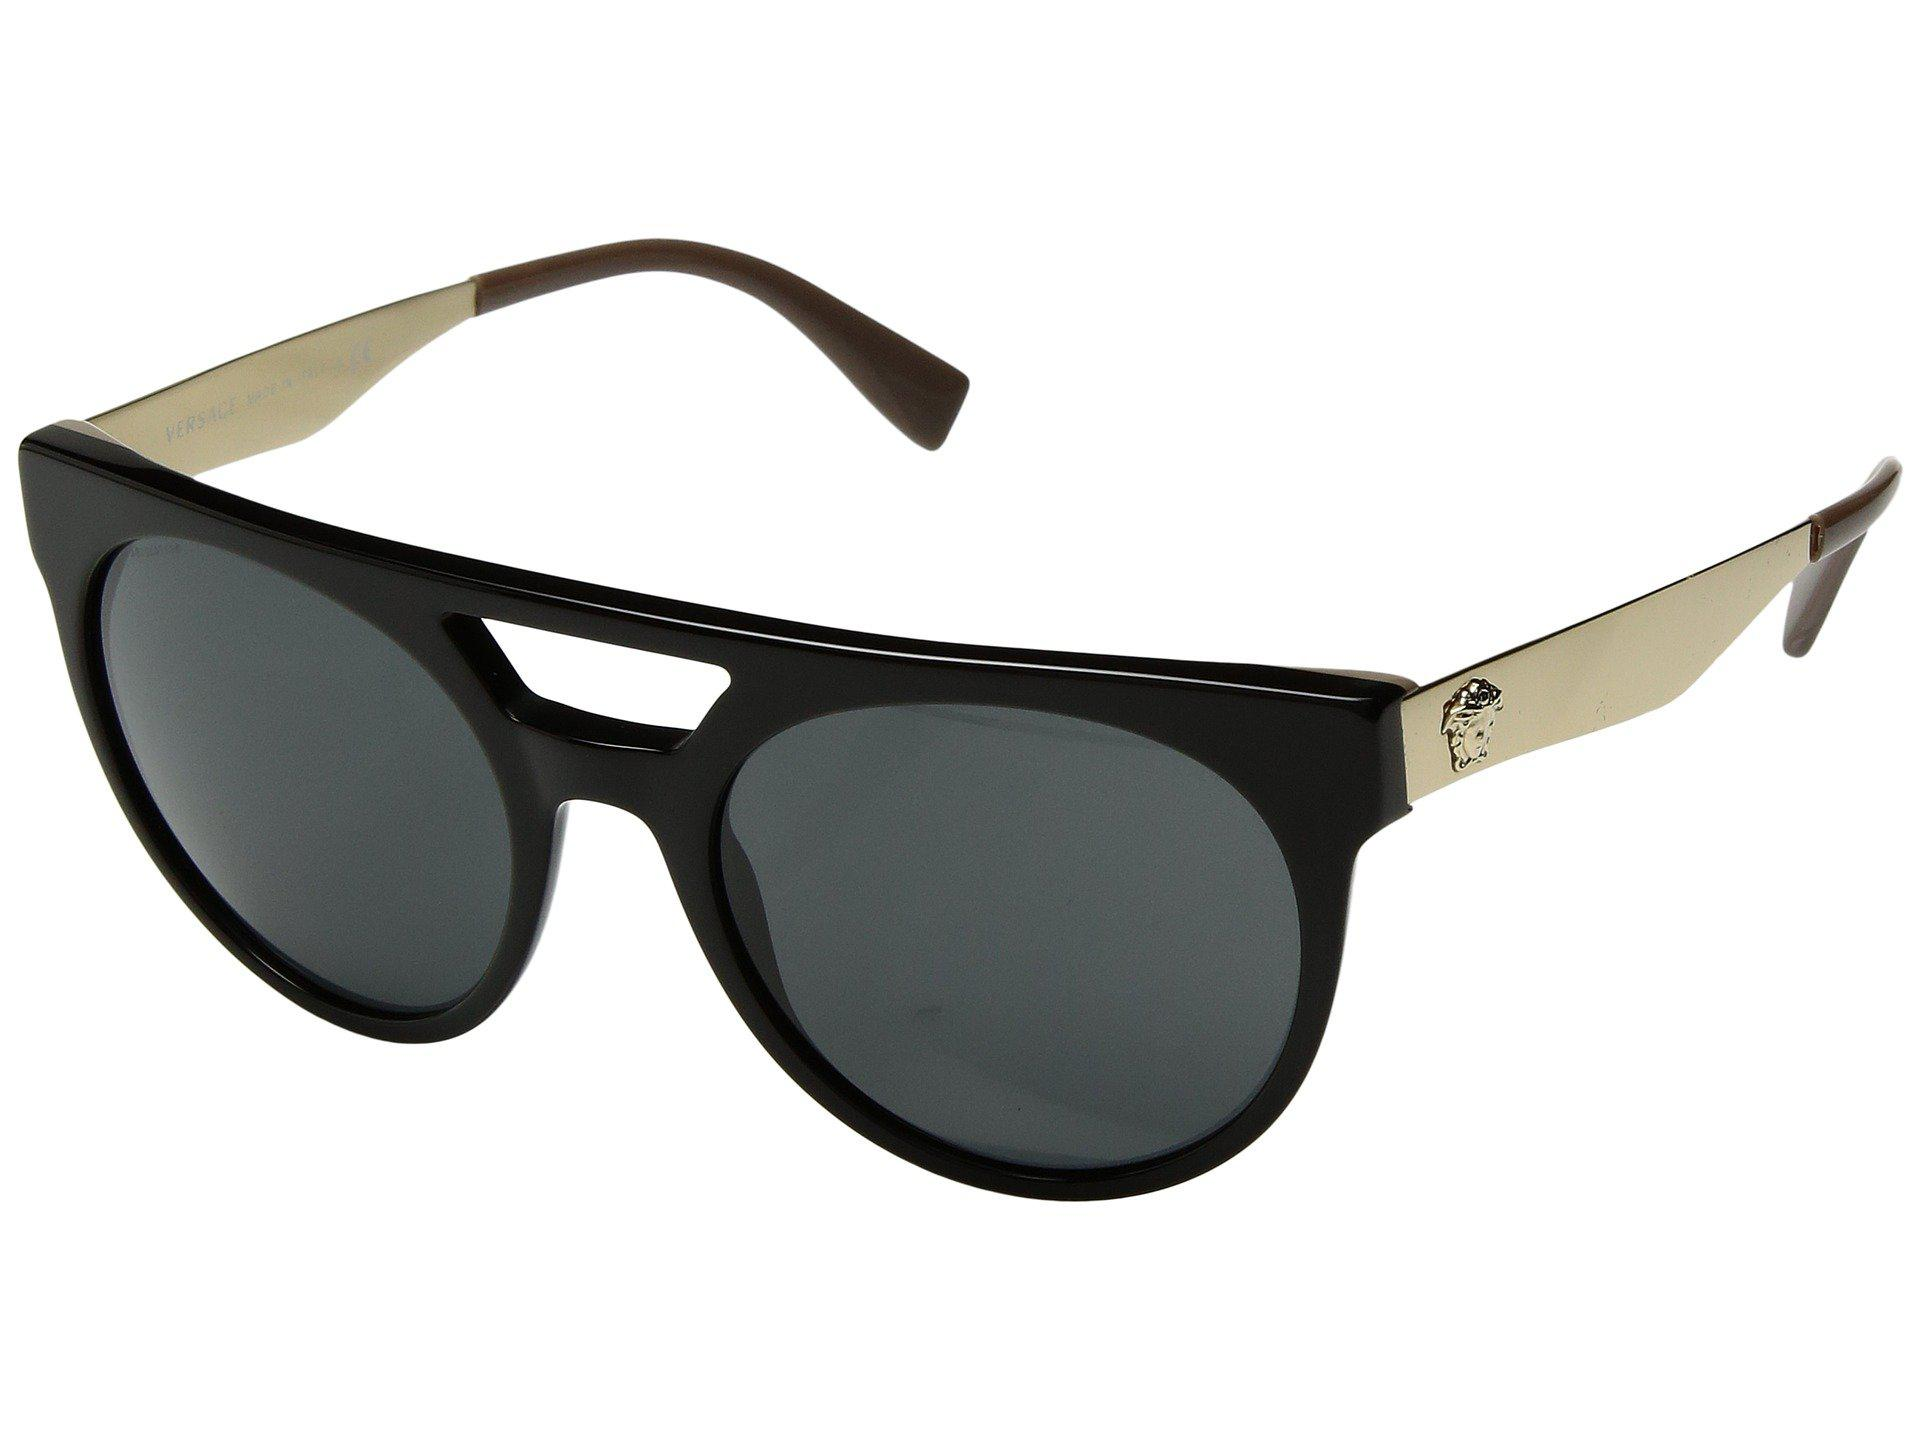 0c4199e546 Lyst - Versace Ve4339 (black beige grey) Fashion Sunglasses in Black